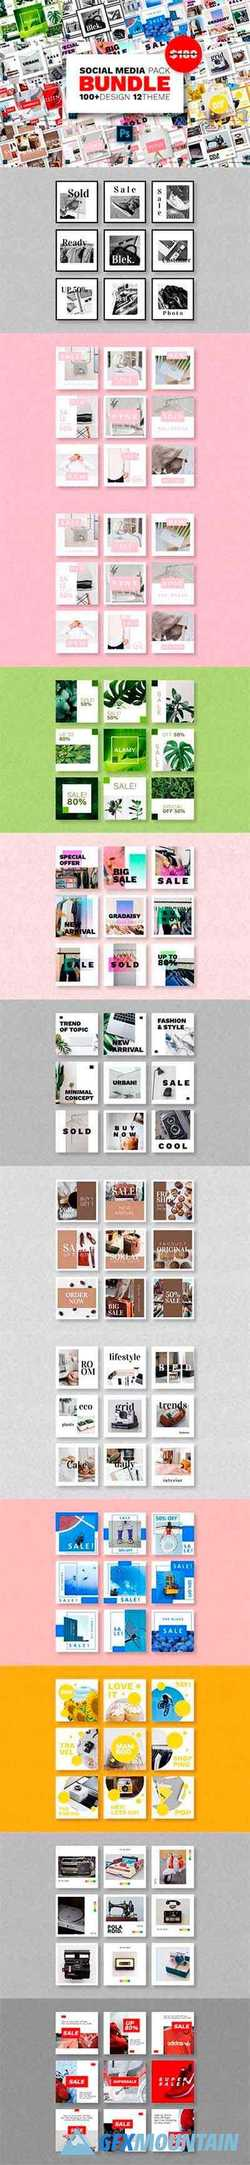 Social Media Pack Bundles – Vol.03